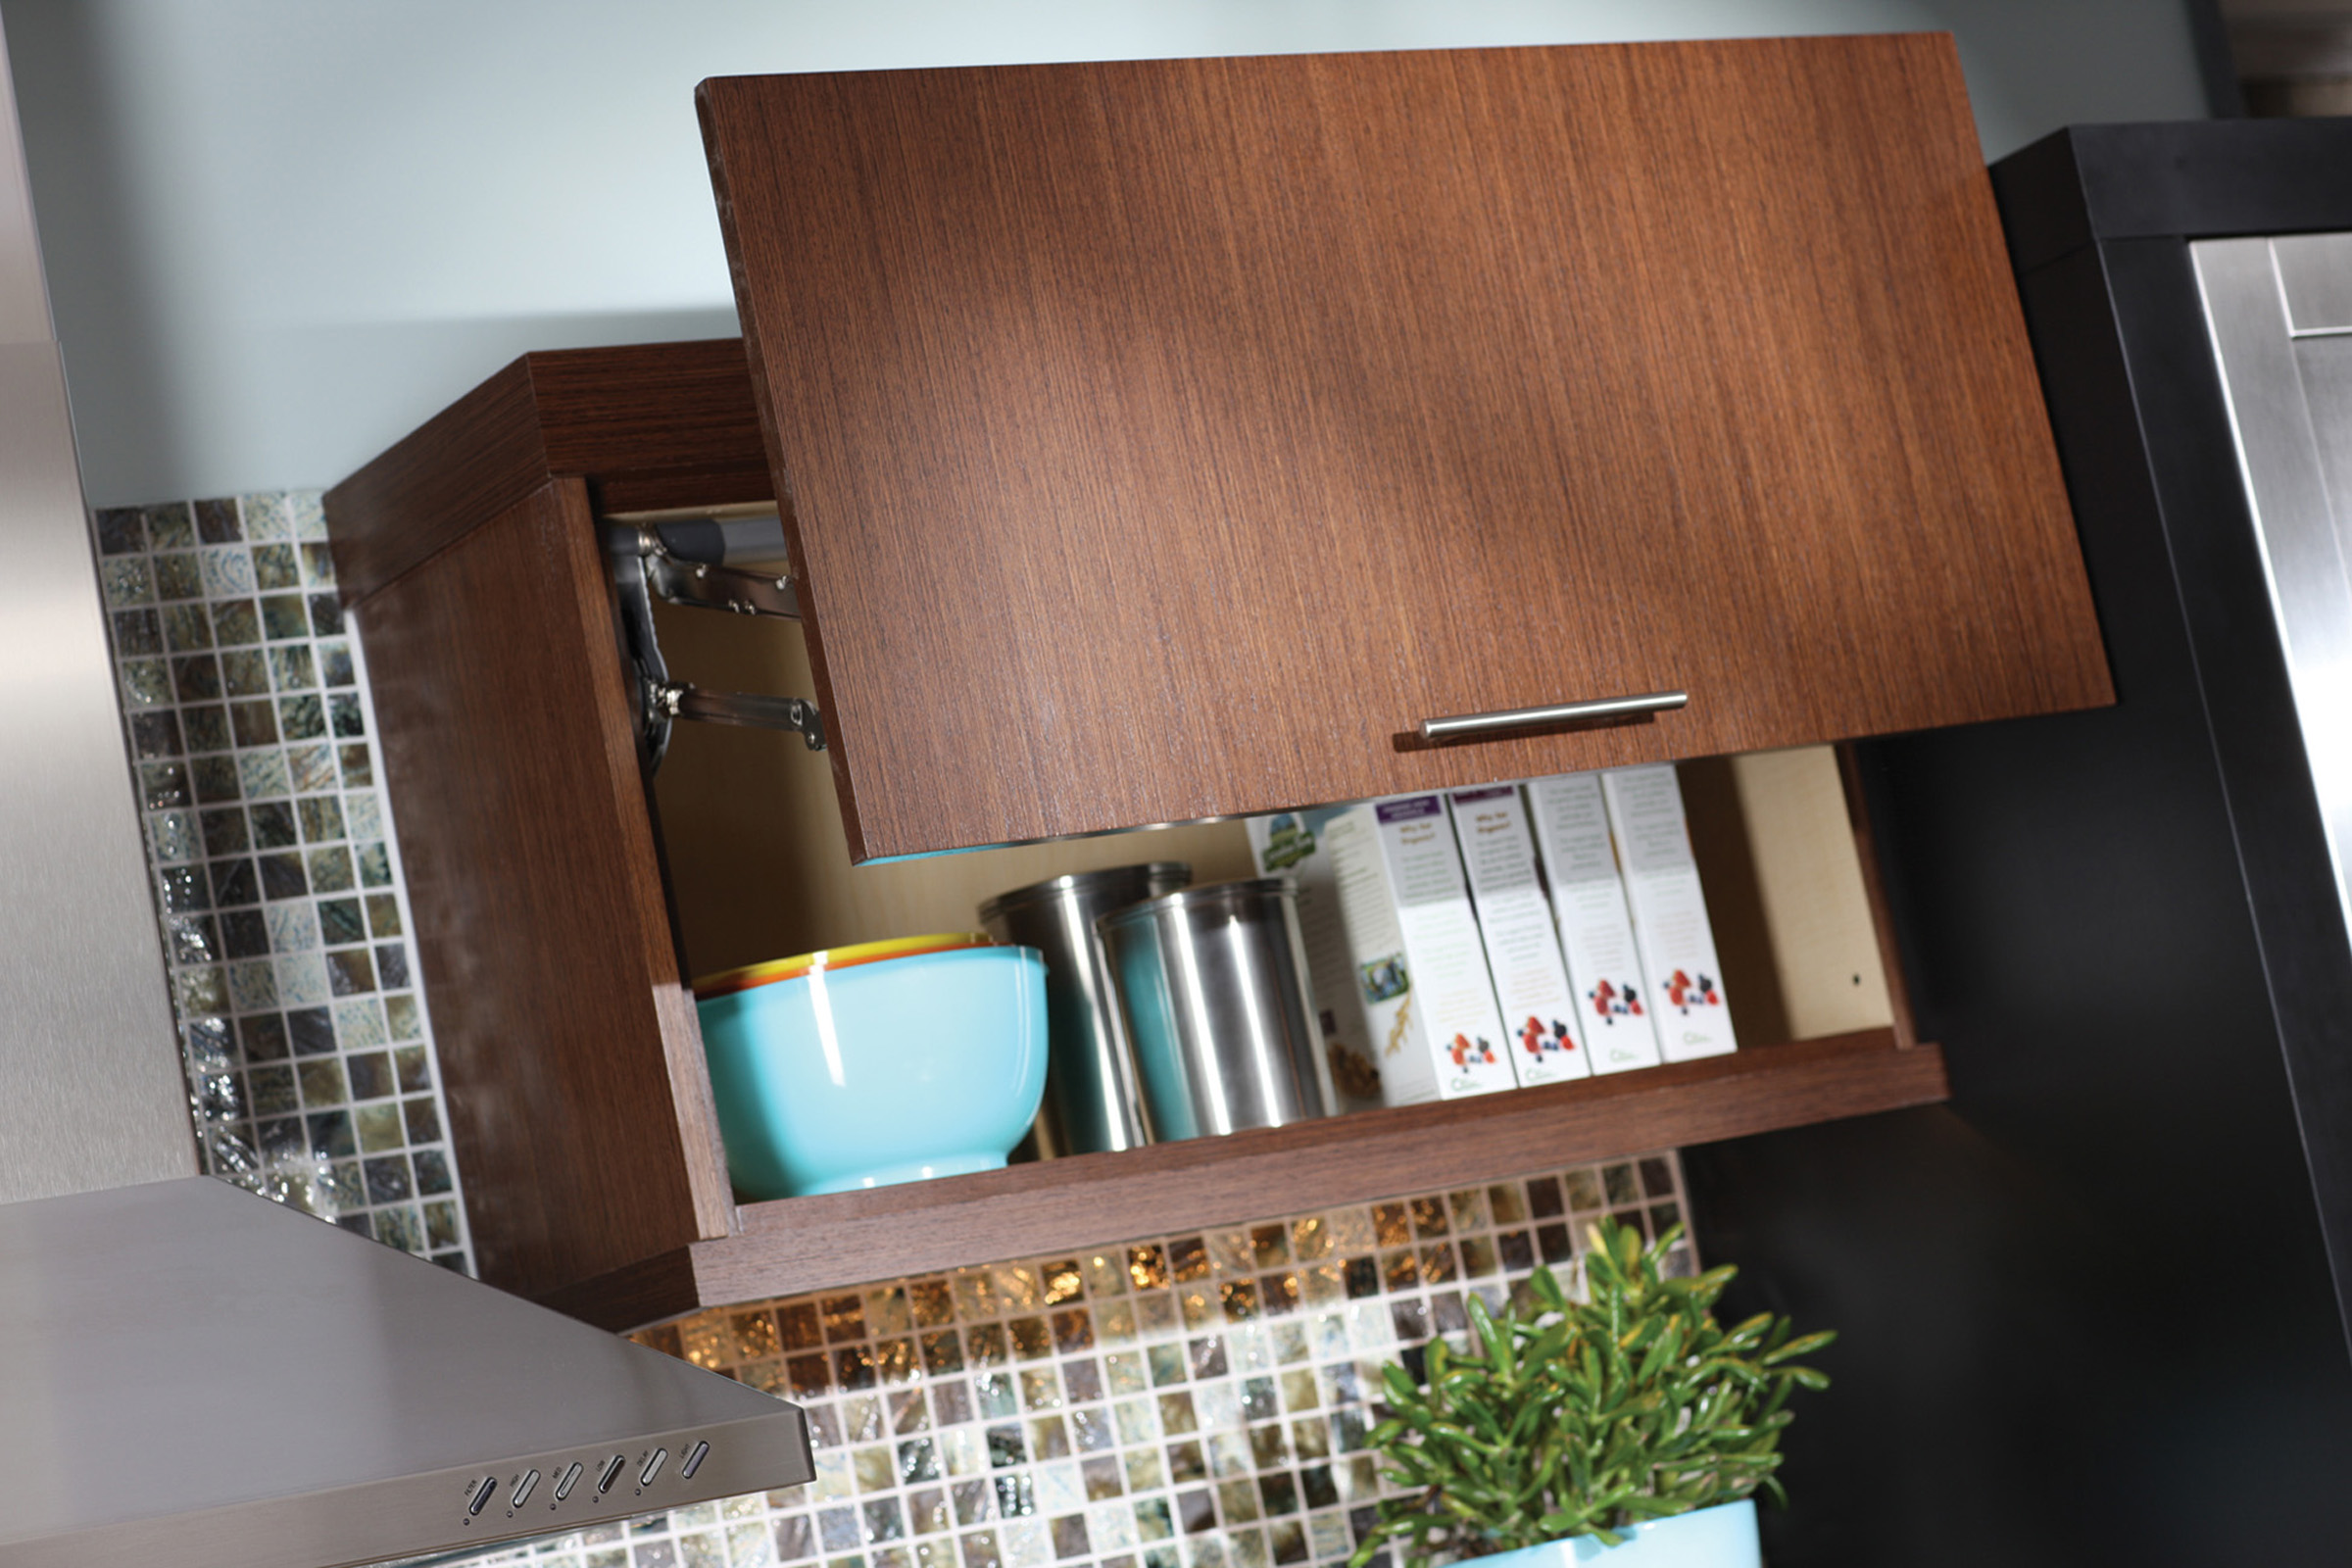 If space allows above the cabinet, a lift-door (WLD) provides full-access to upper cabinets that are hard to reach. Kitchen storage idea from Dura Supreme Cabinetry.